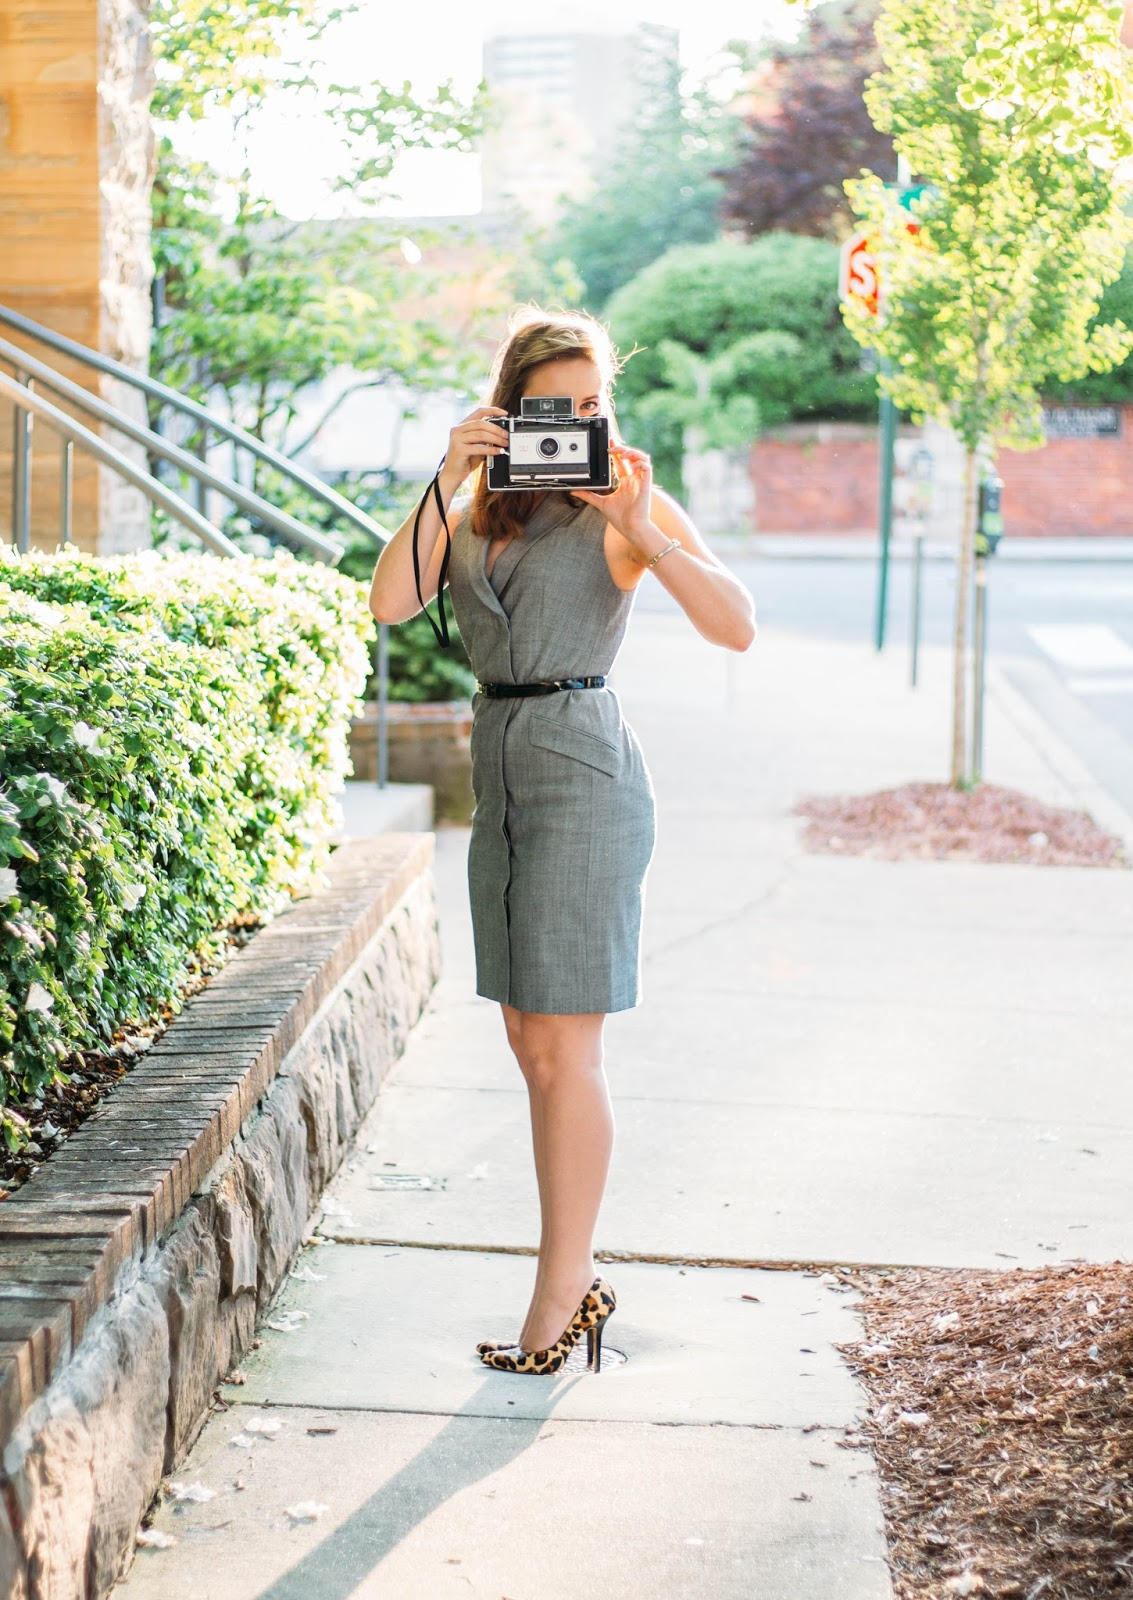 banana republic, style, classic style, fashion, blogger, vintage, retro, modern take, vintage inspired, screenwriting, film making, writer, vintage fashion blogger, old holly wood style, spring outfit, day to night outfit, 60s camera, polaroid,